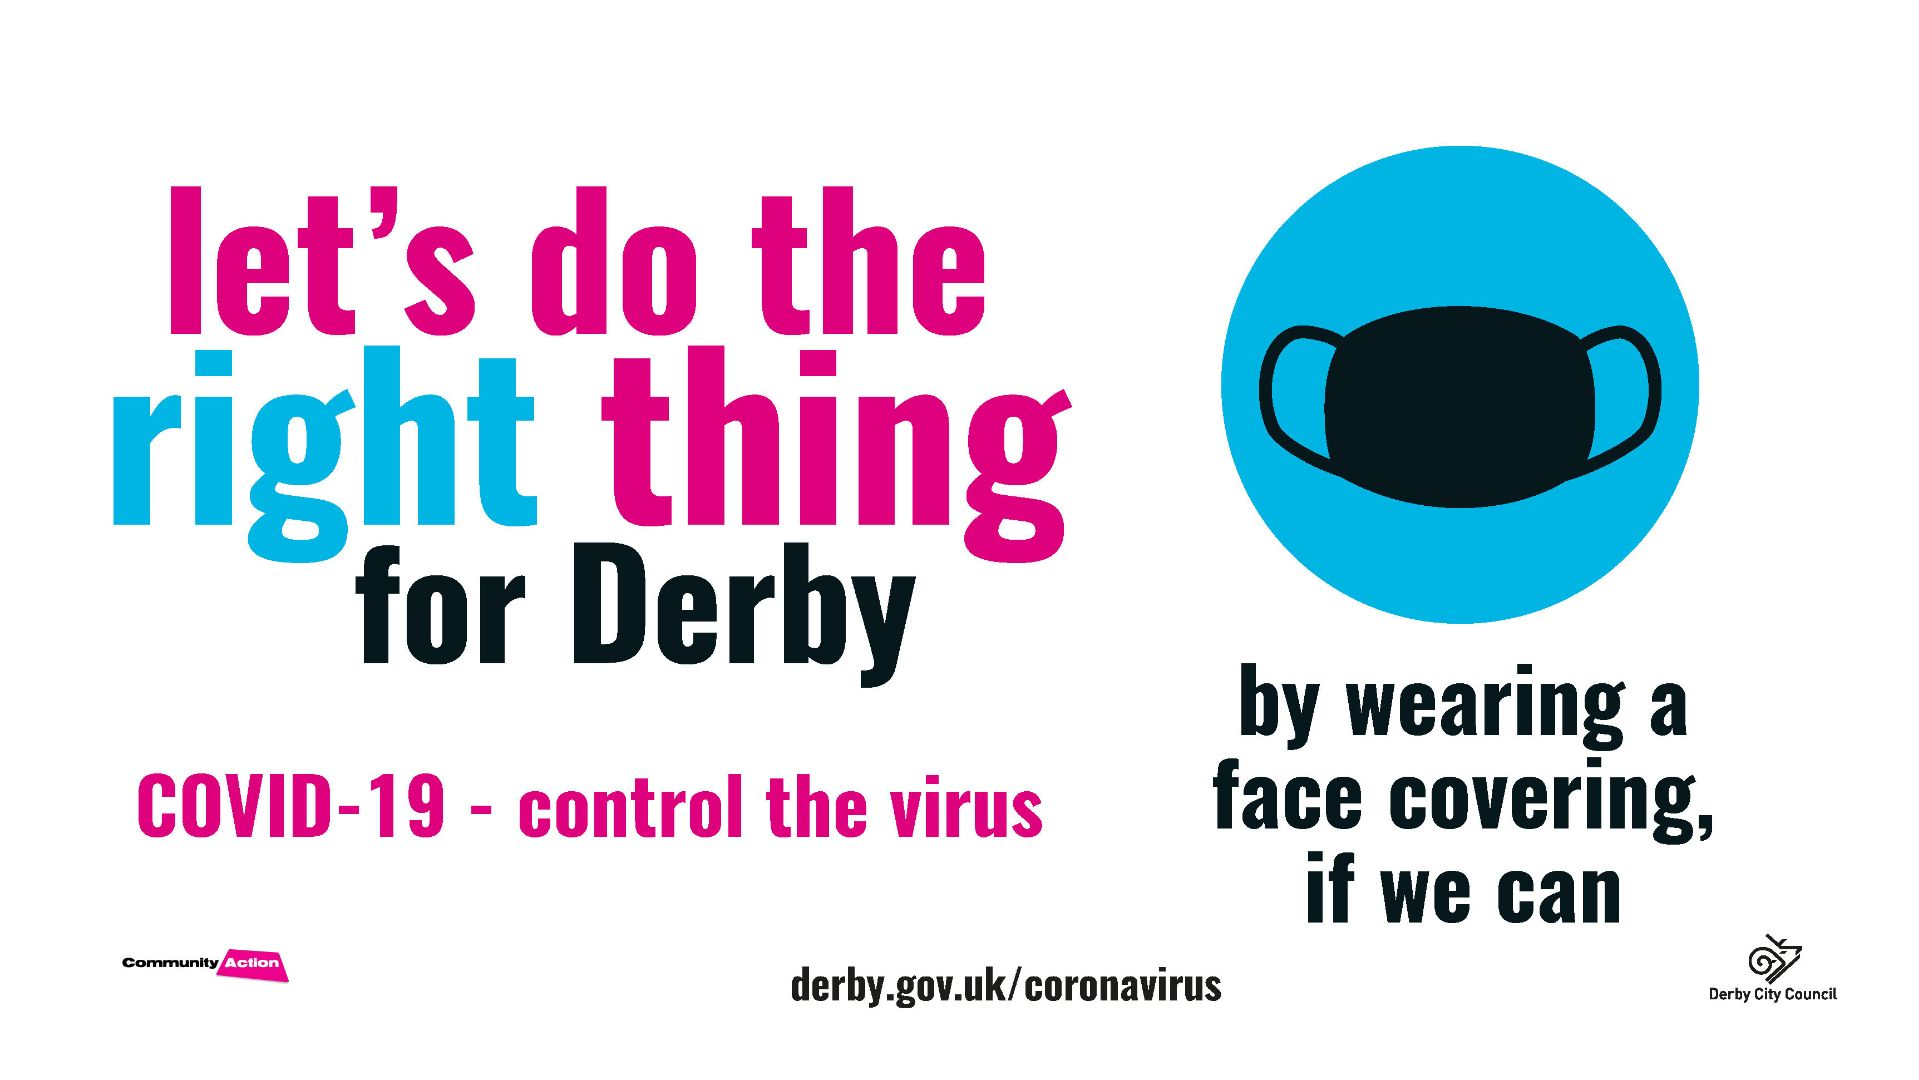 'Let's do the right thing for Derby' slogan with picture of face mask